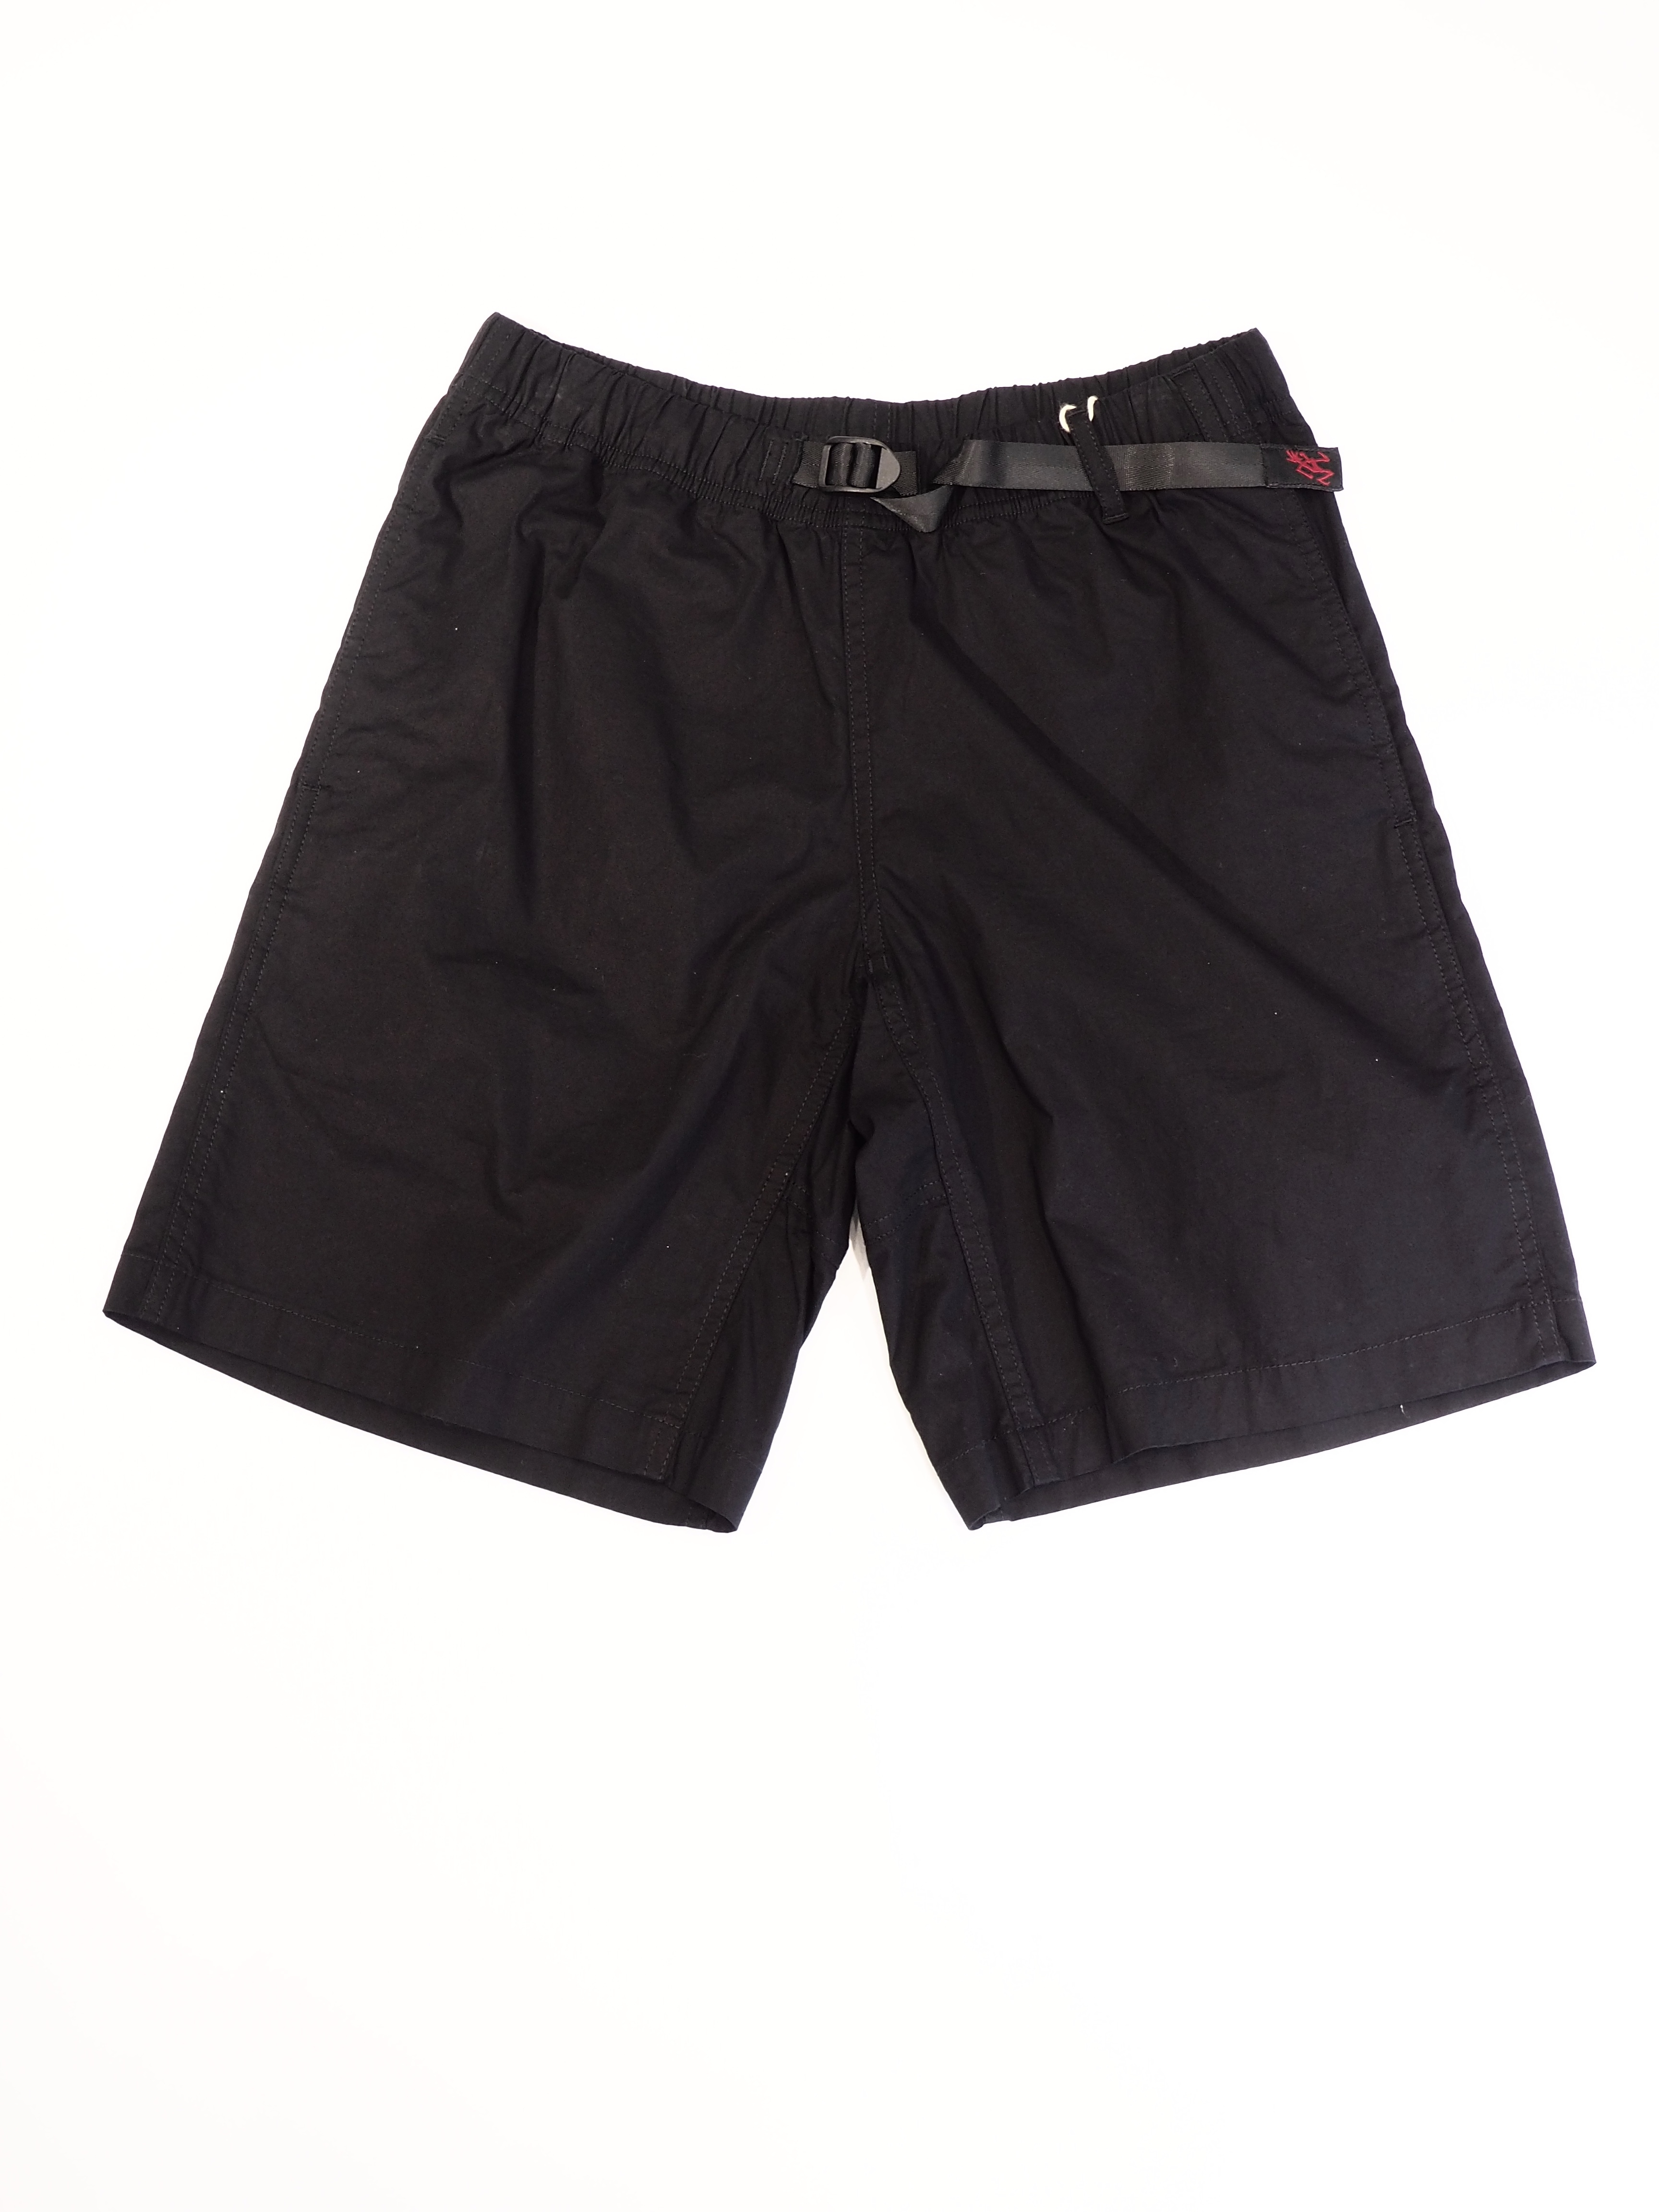 【GRAMiCCi】WEATHER WS G-SHORTS